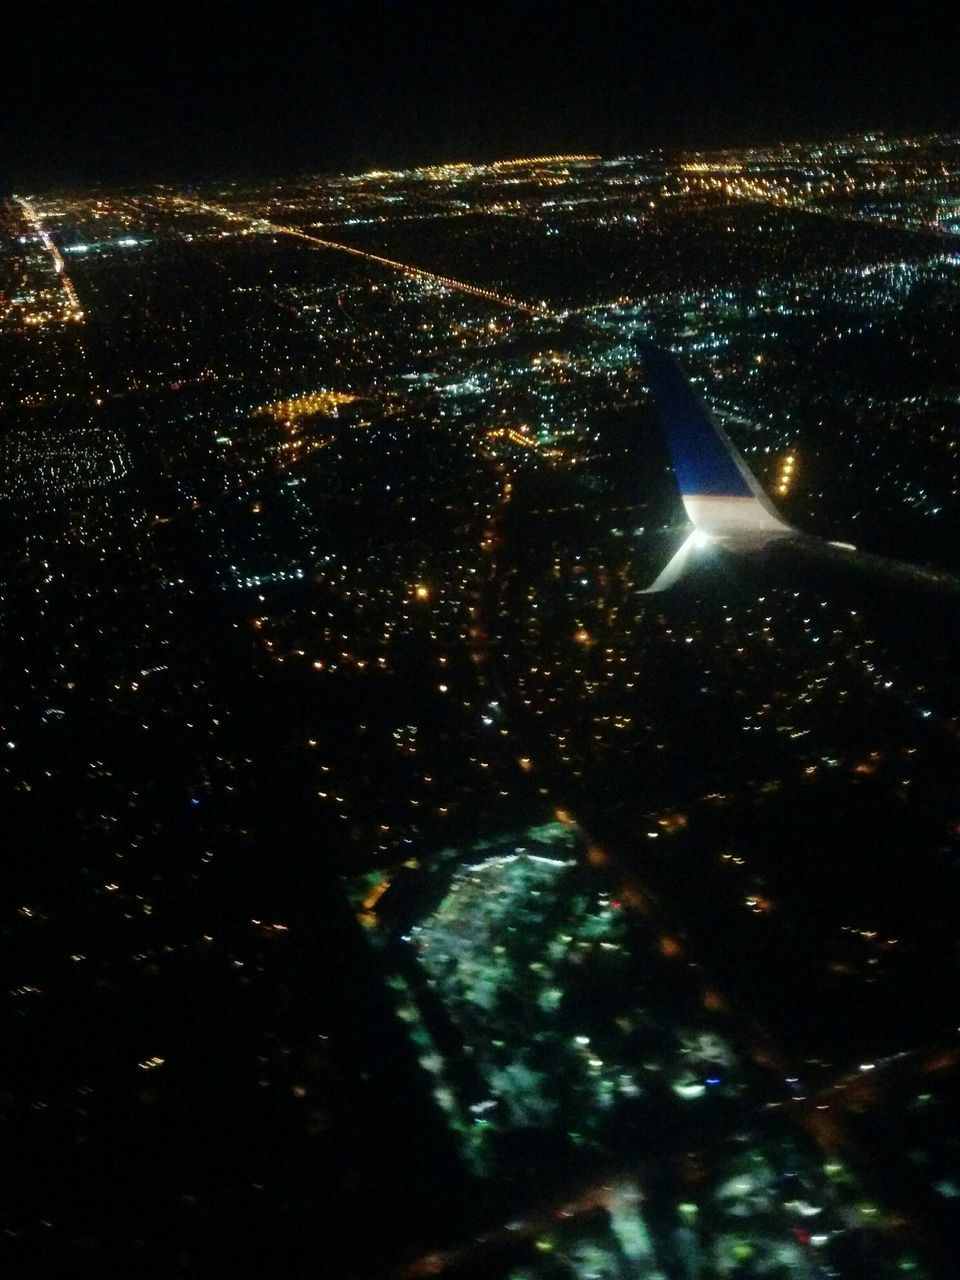 night, illuminated, no people, aerial view, city, outdoors, cityscape, nature, airplane wing